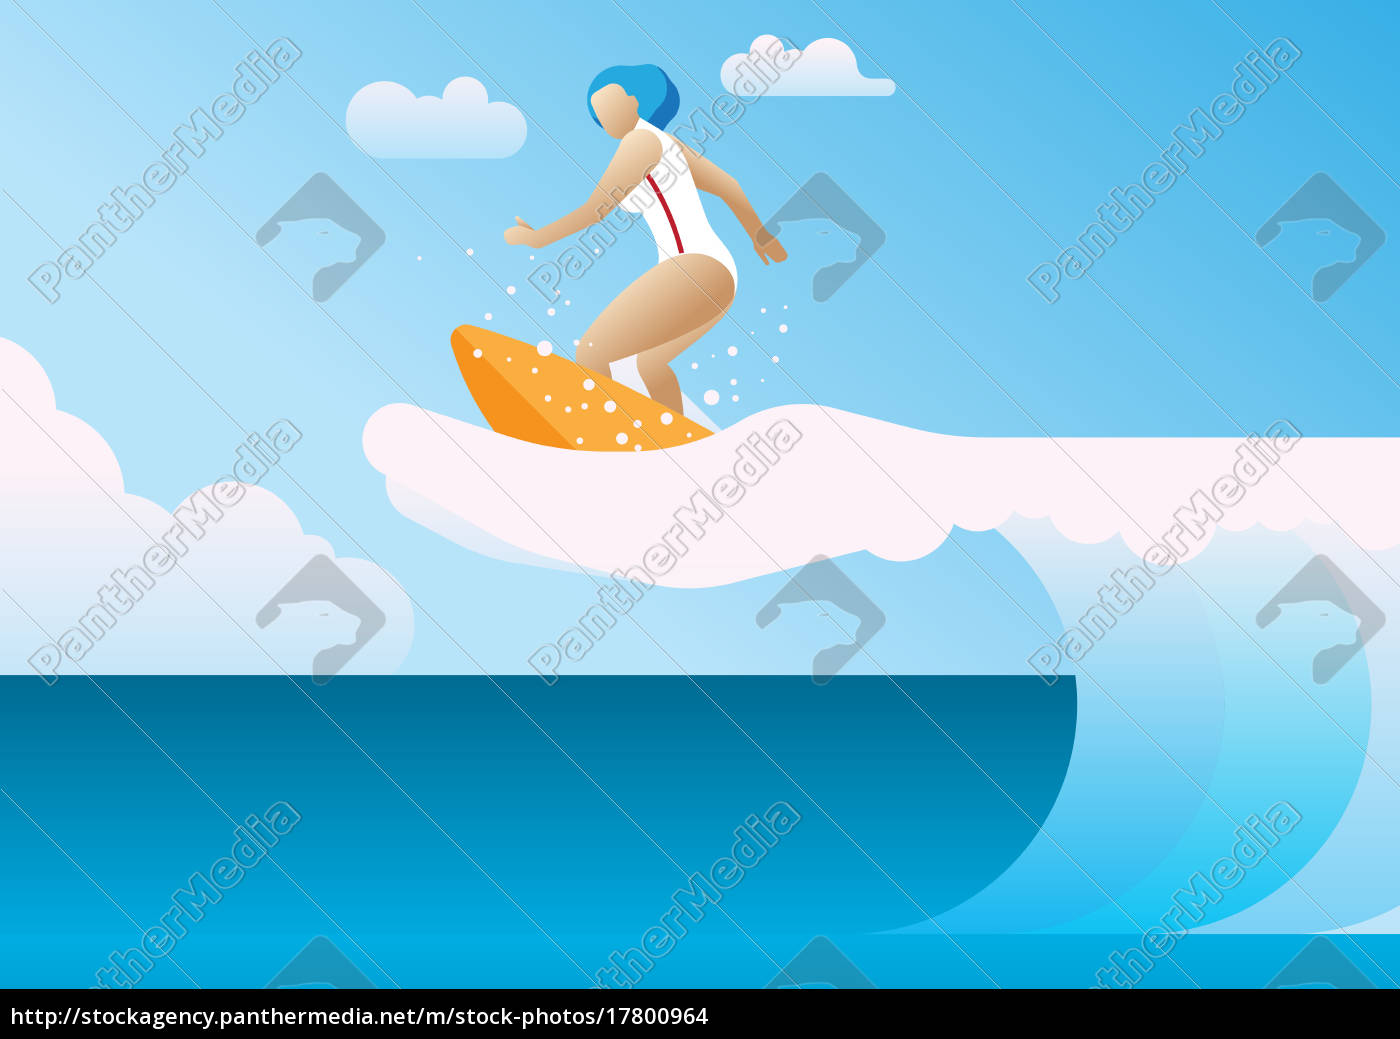 woman, surfing, the, waves, a, hand - 17800964